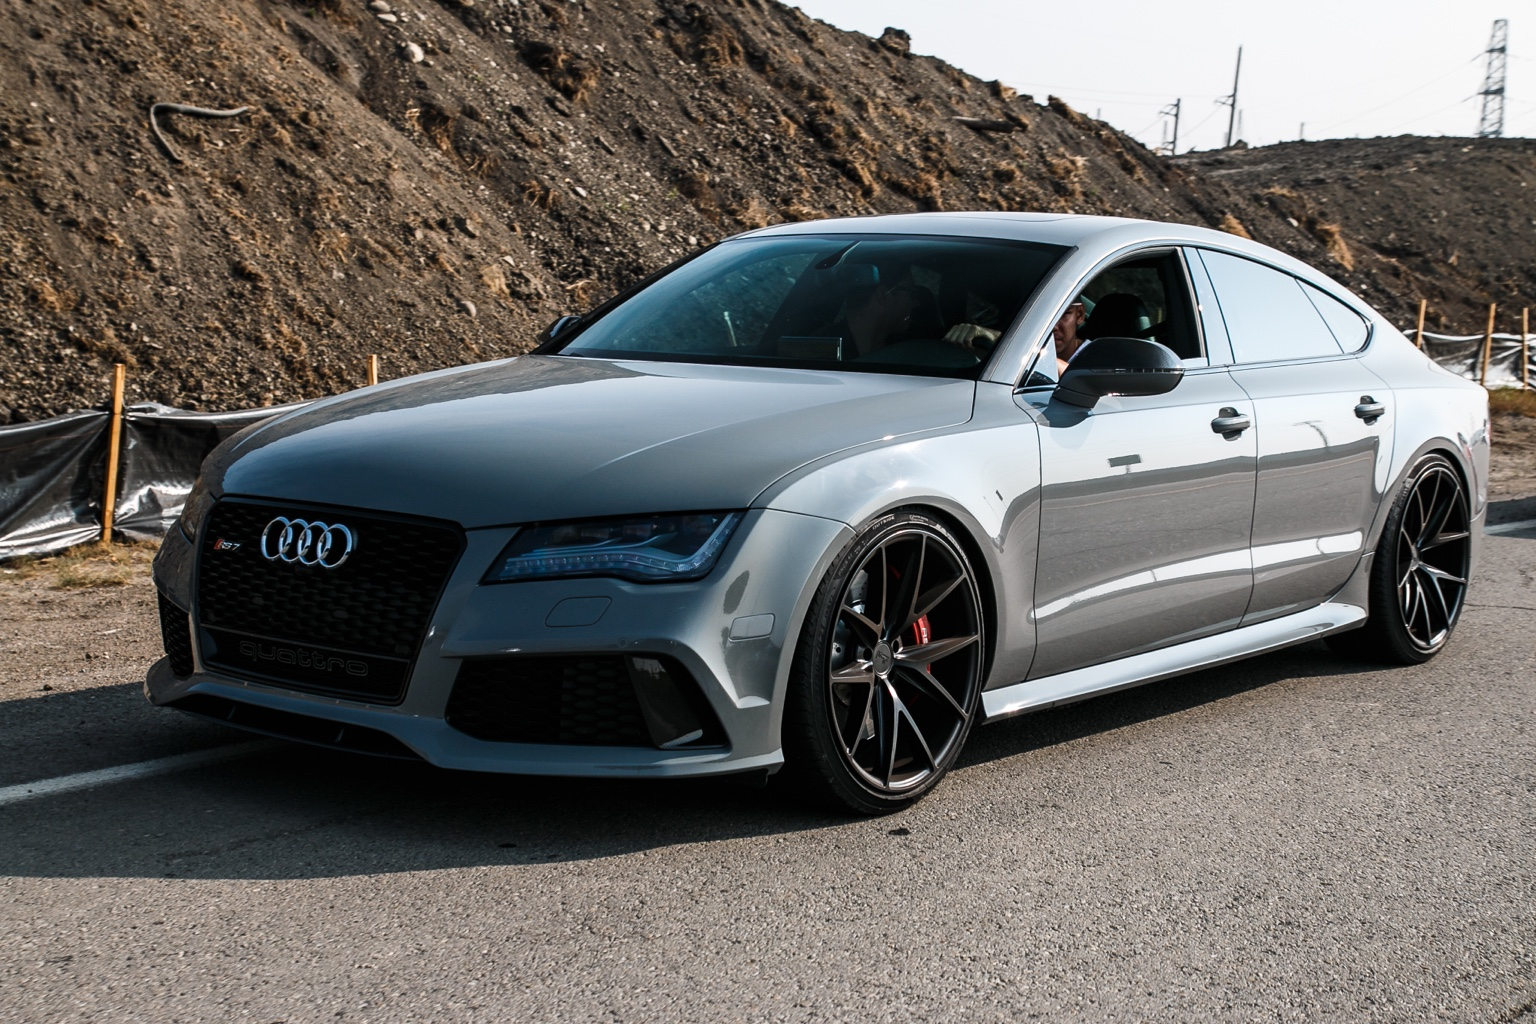 for sale 2015 audi rs7 nardo grey stage 2 and more. Black Bedroom Furniture Sets. Home Design Ideas